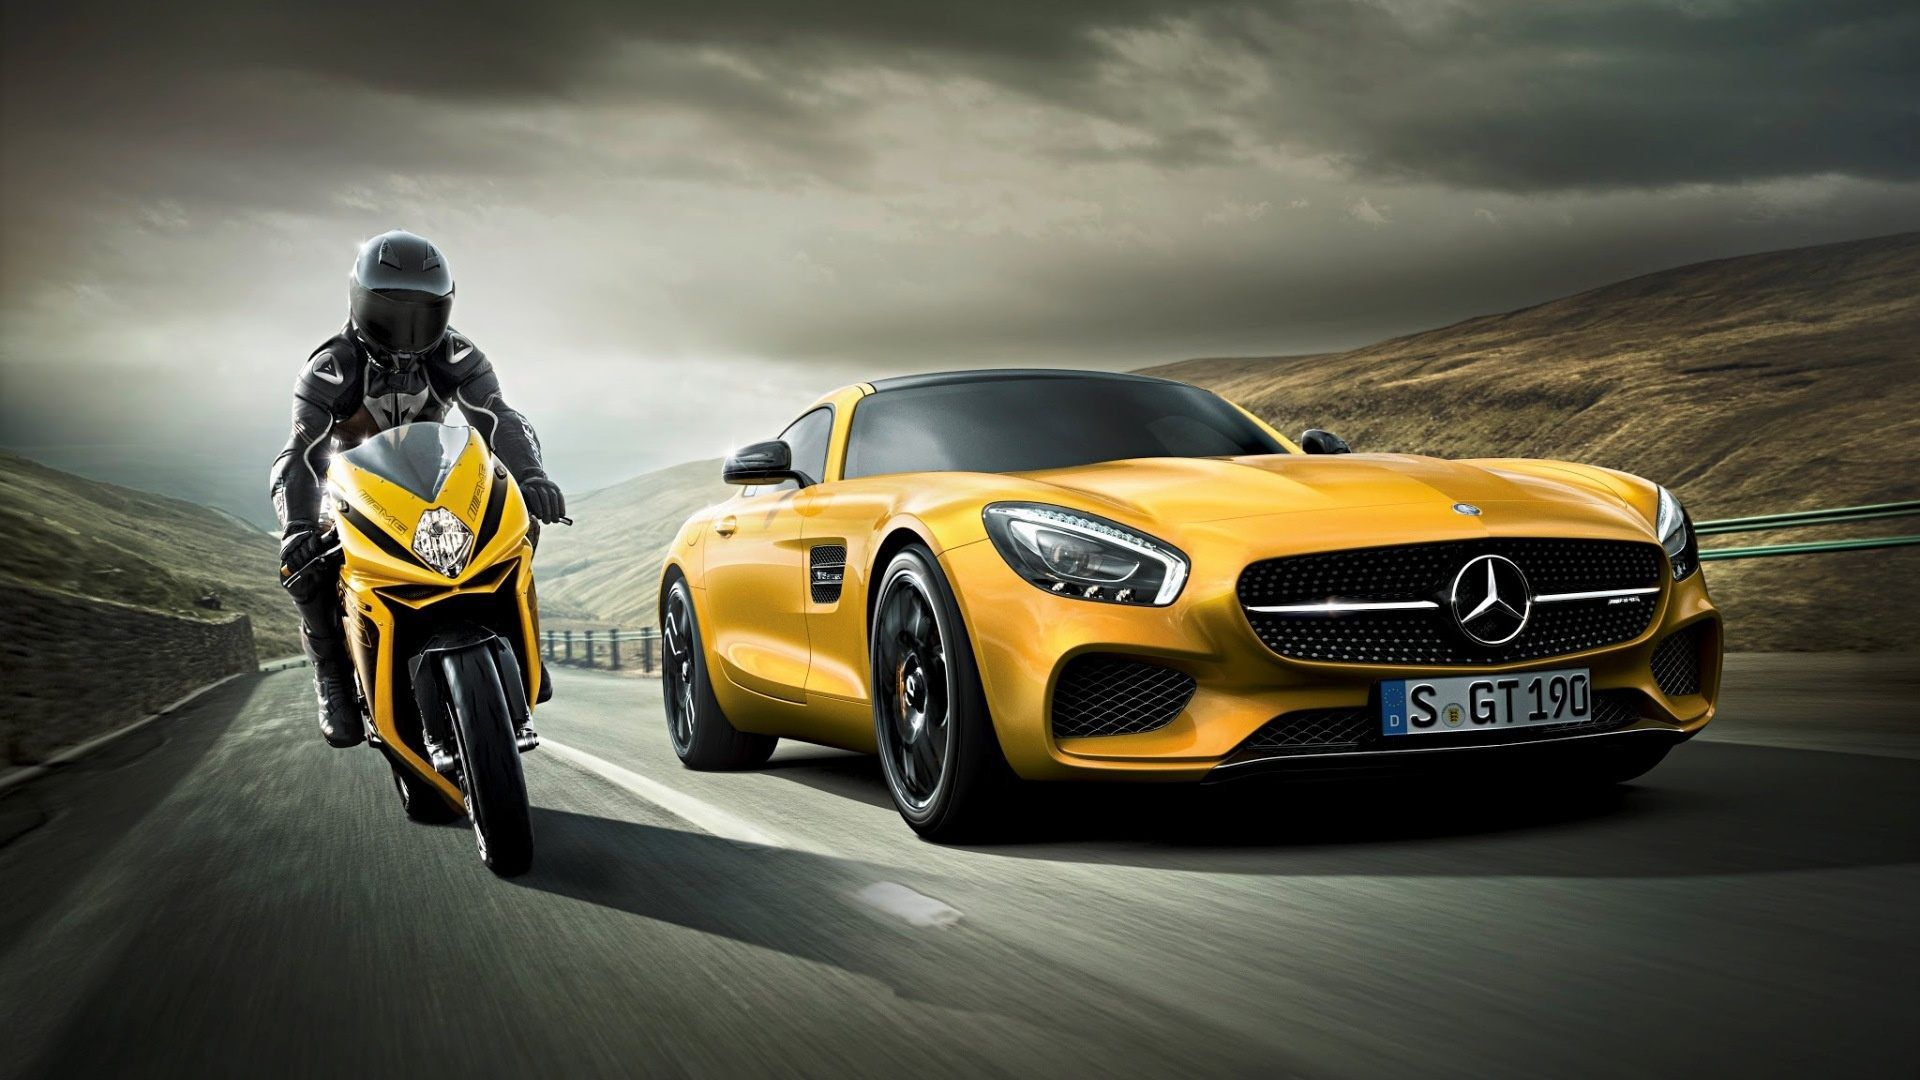 Motorcycle And Sports Cars Wallpapers Top Free Motorcycle